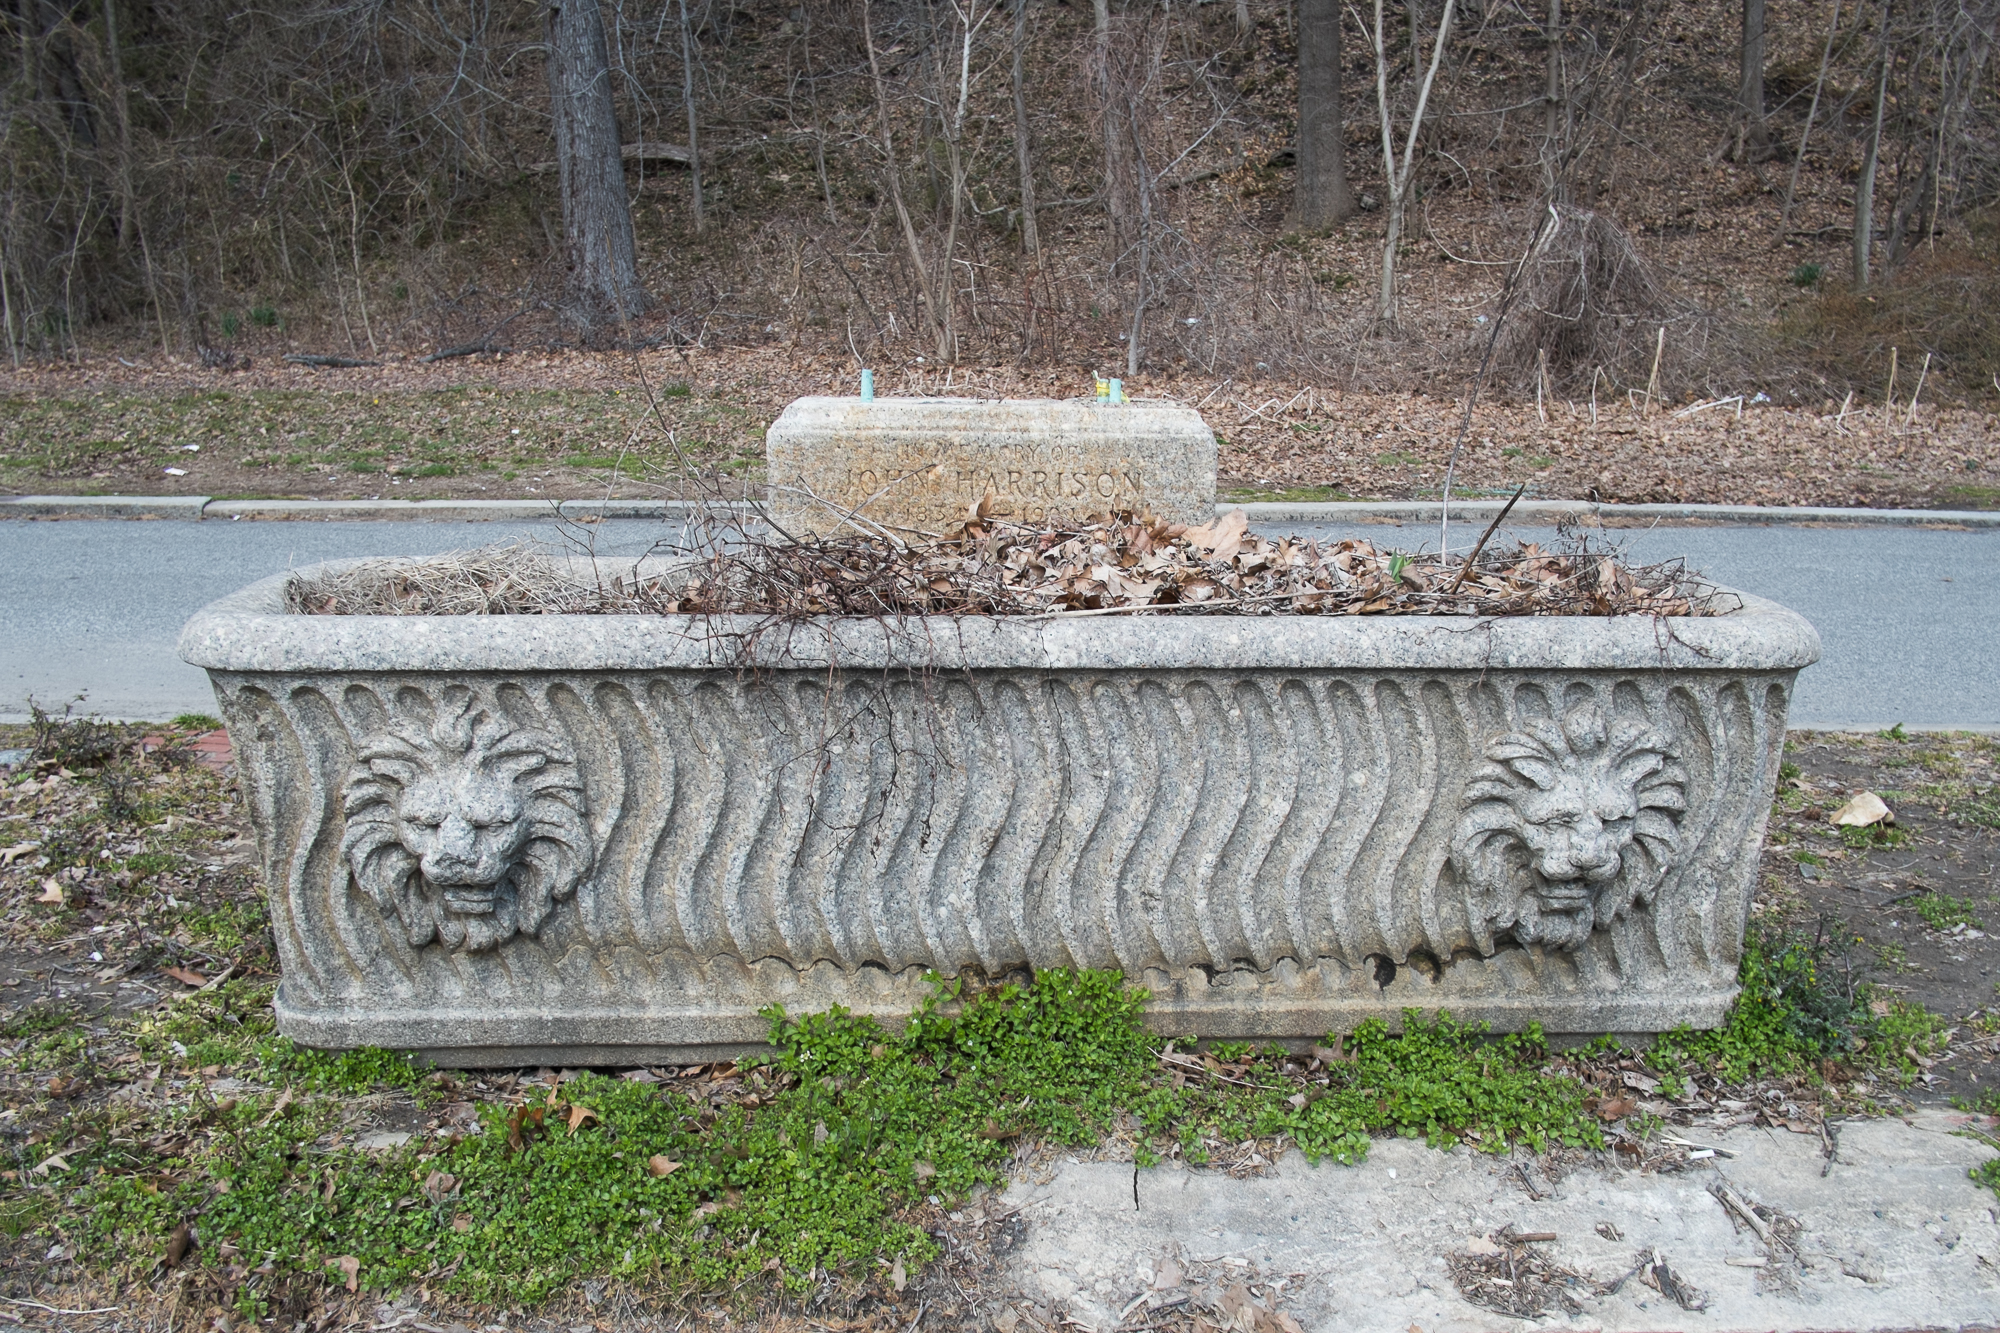 This silted up trough with the lion's head motif was donated to the memory of John Harrison, sits along Kelly Drive near Fountain Green.